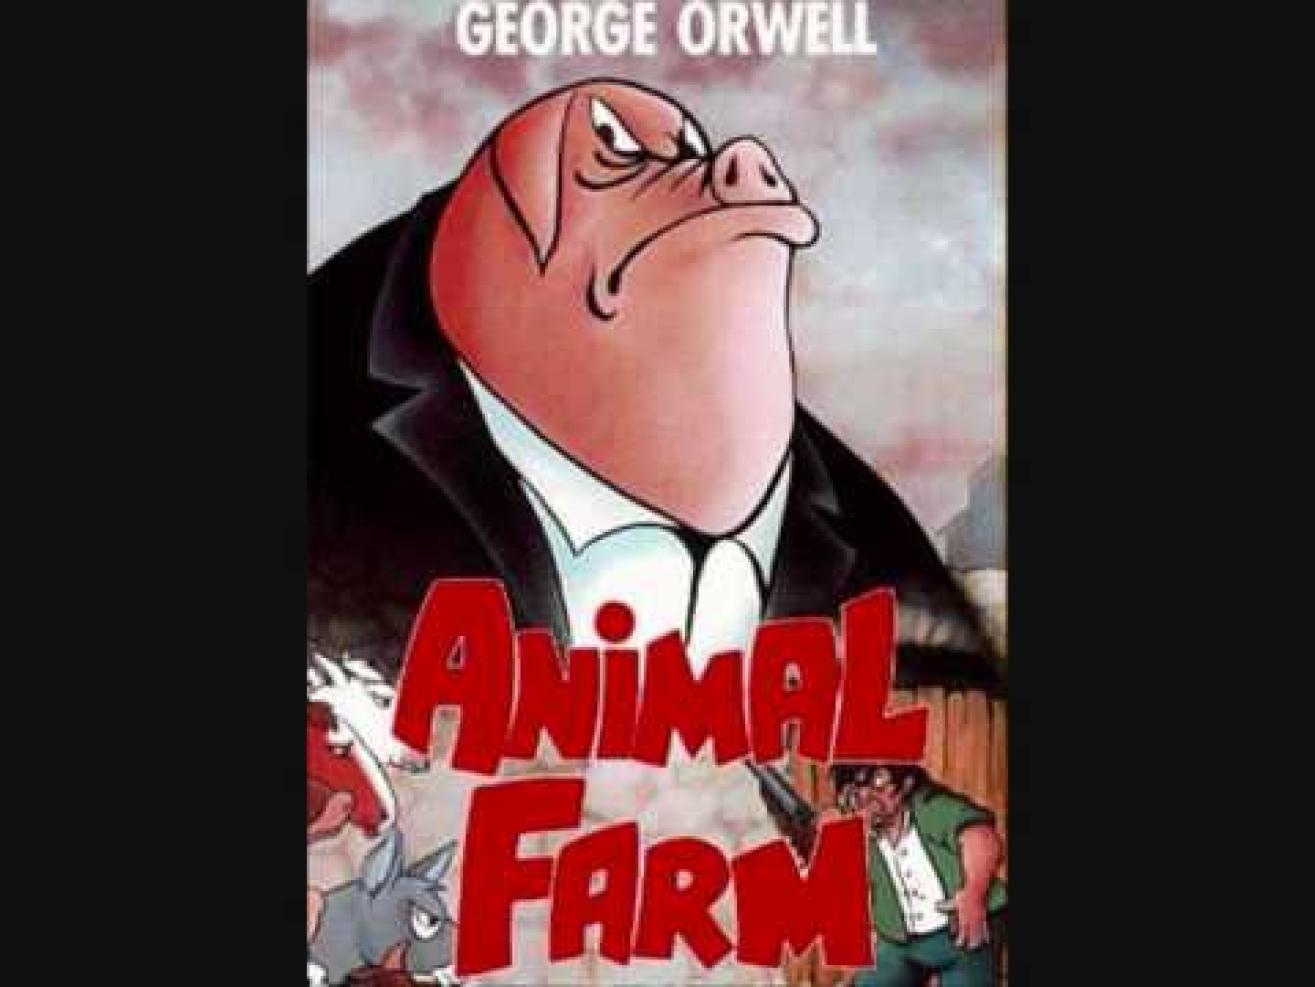 animal farm napoleon and boxer A) napoleon values and encourages literacy for all animals on the farm b) napoleon laments the animals' illiteracy and wishes that they took education more seriously c) napoleon's education of the young animals is more accurately described as indoctrination.